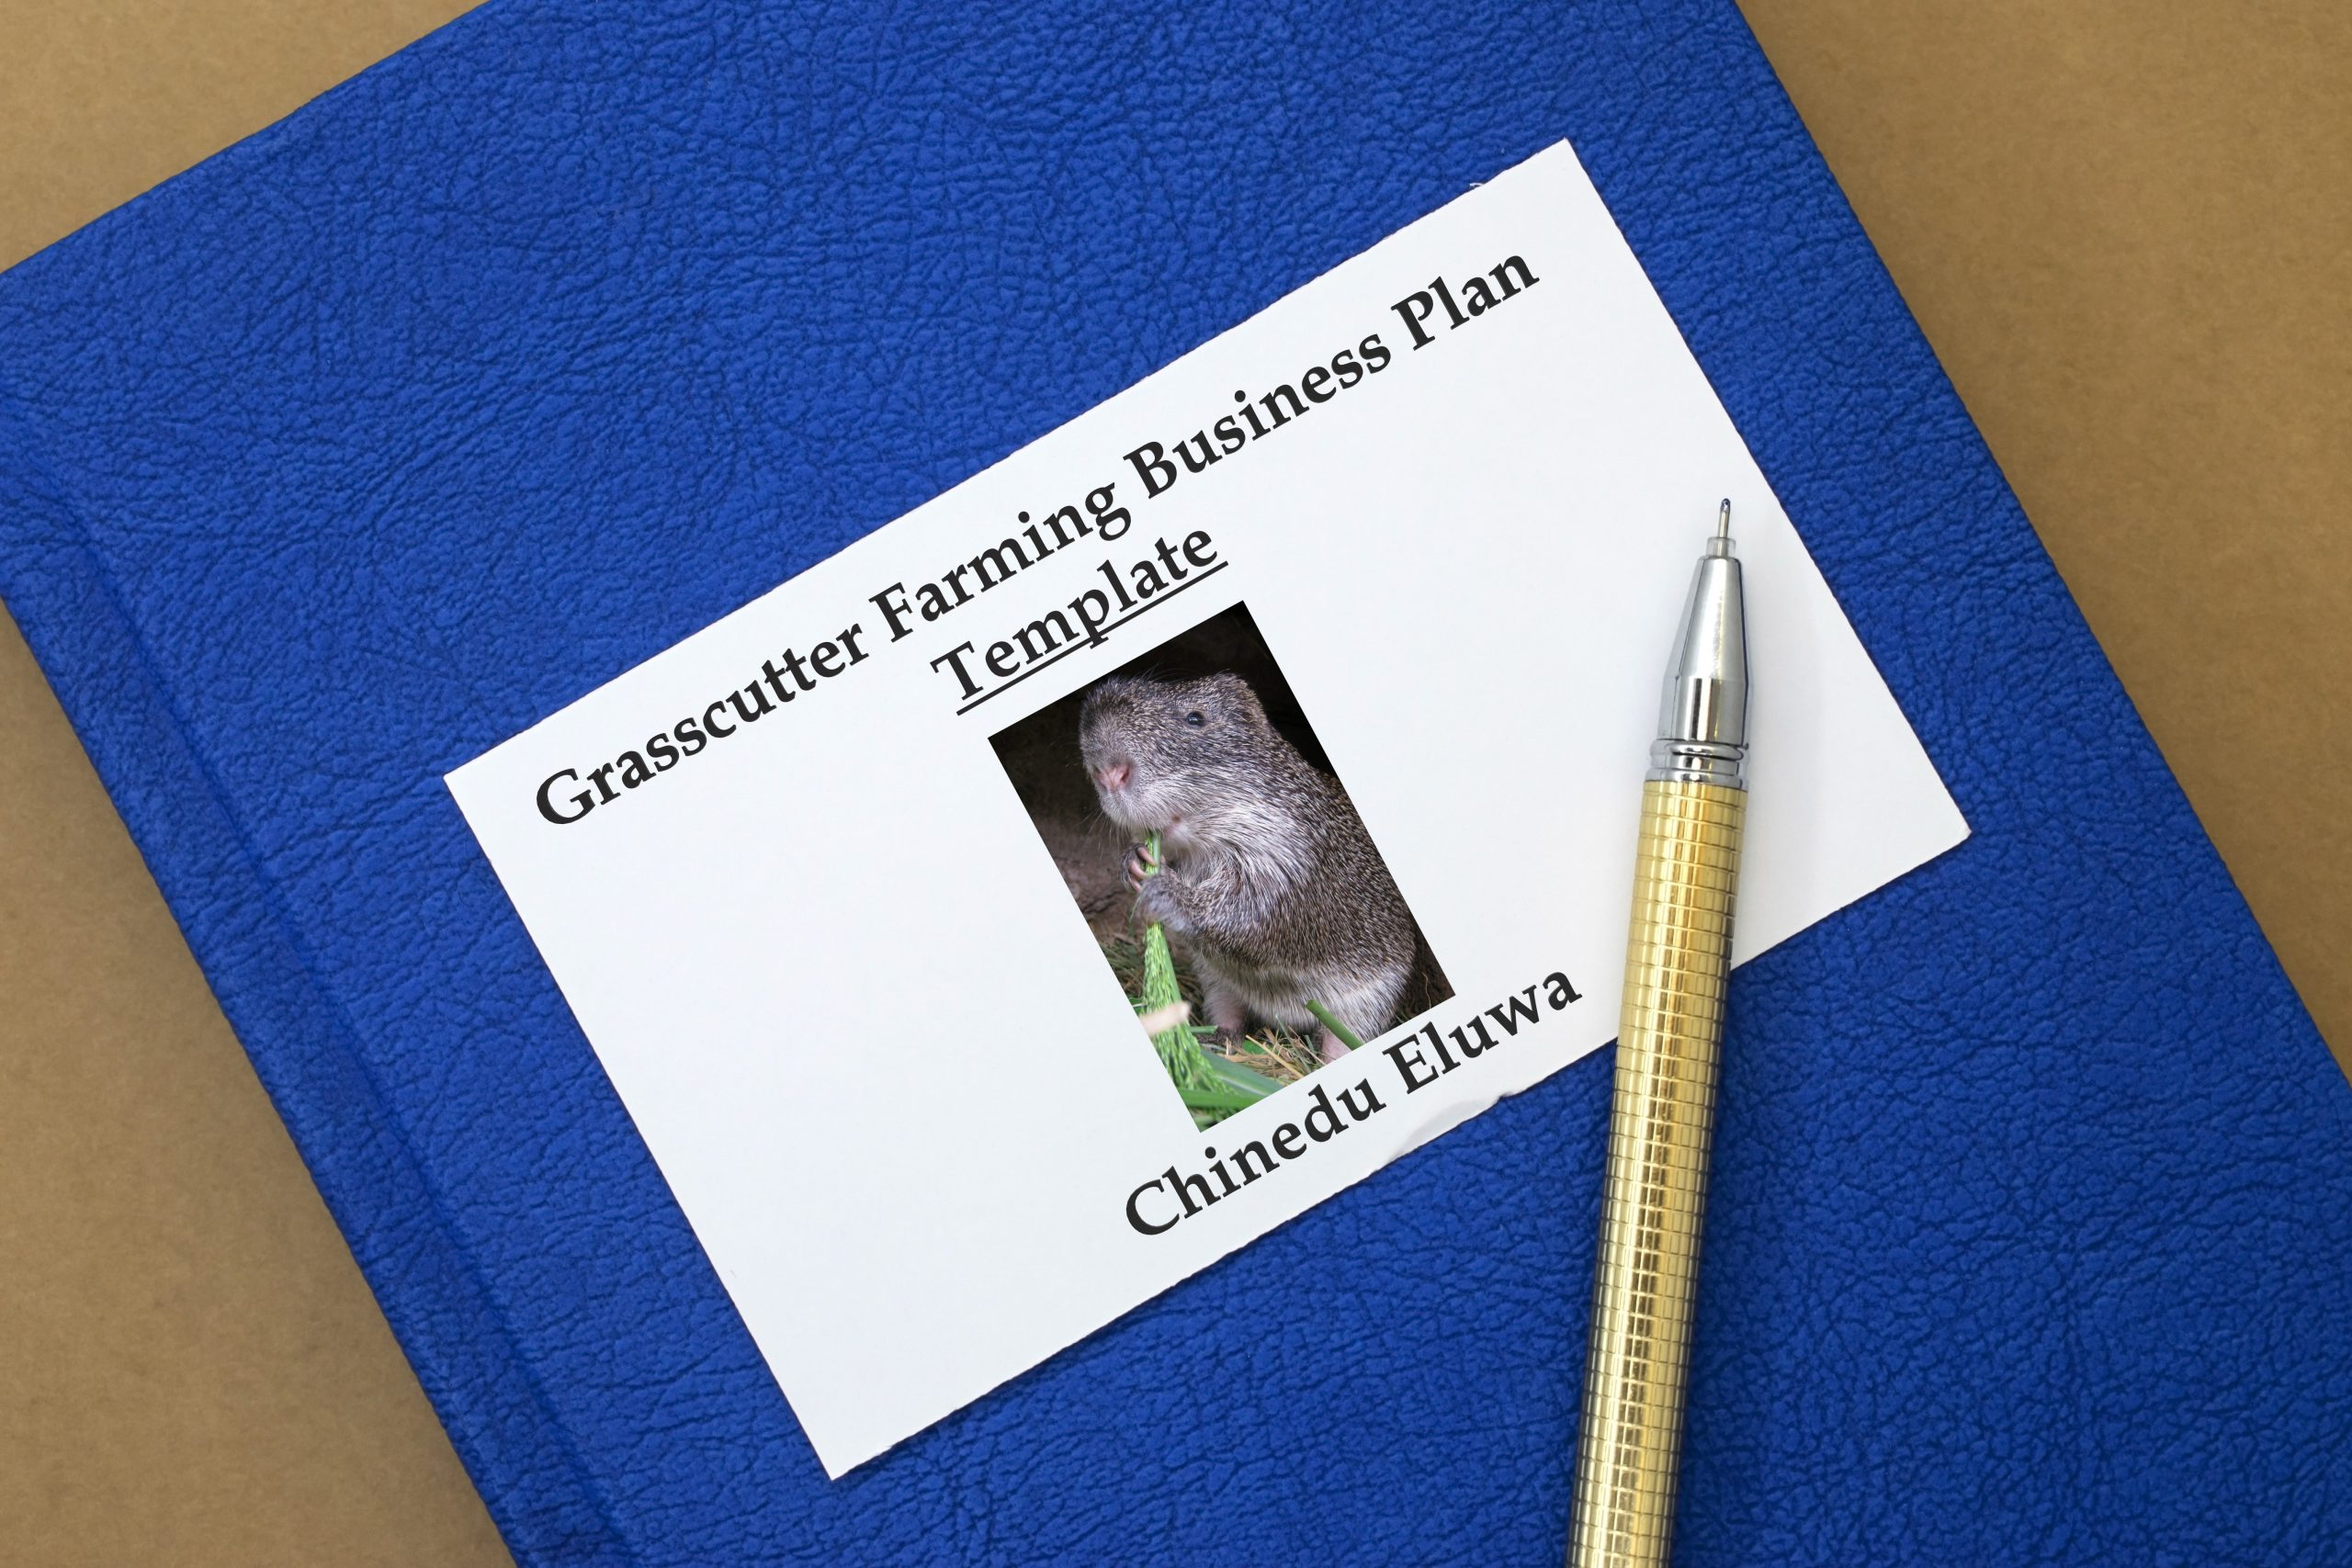 grasscutter farming business plan template book cover scaled